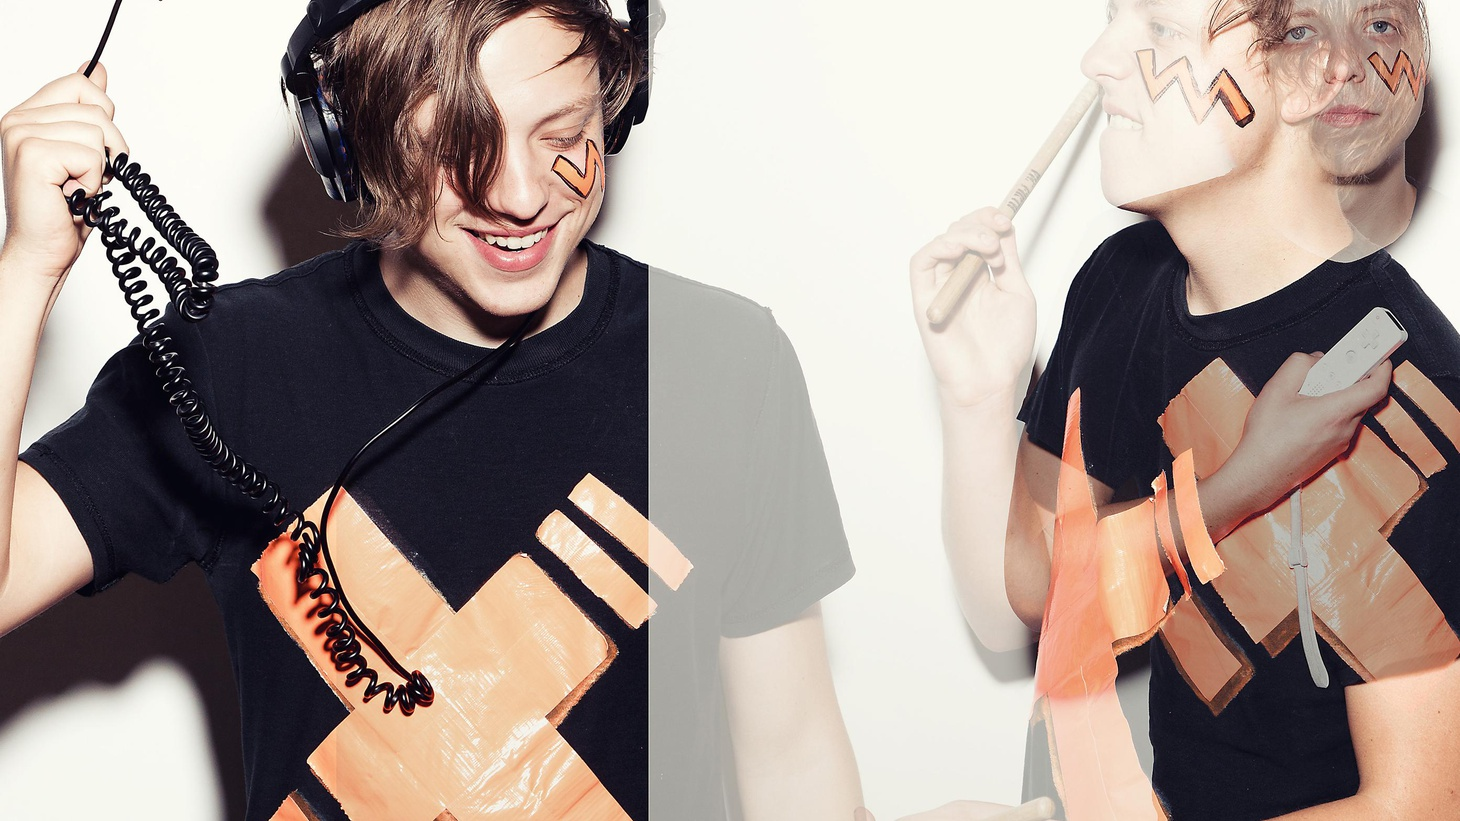 Robert DeLong throws a futuristic dance party on his debut full length release...